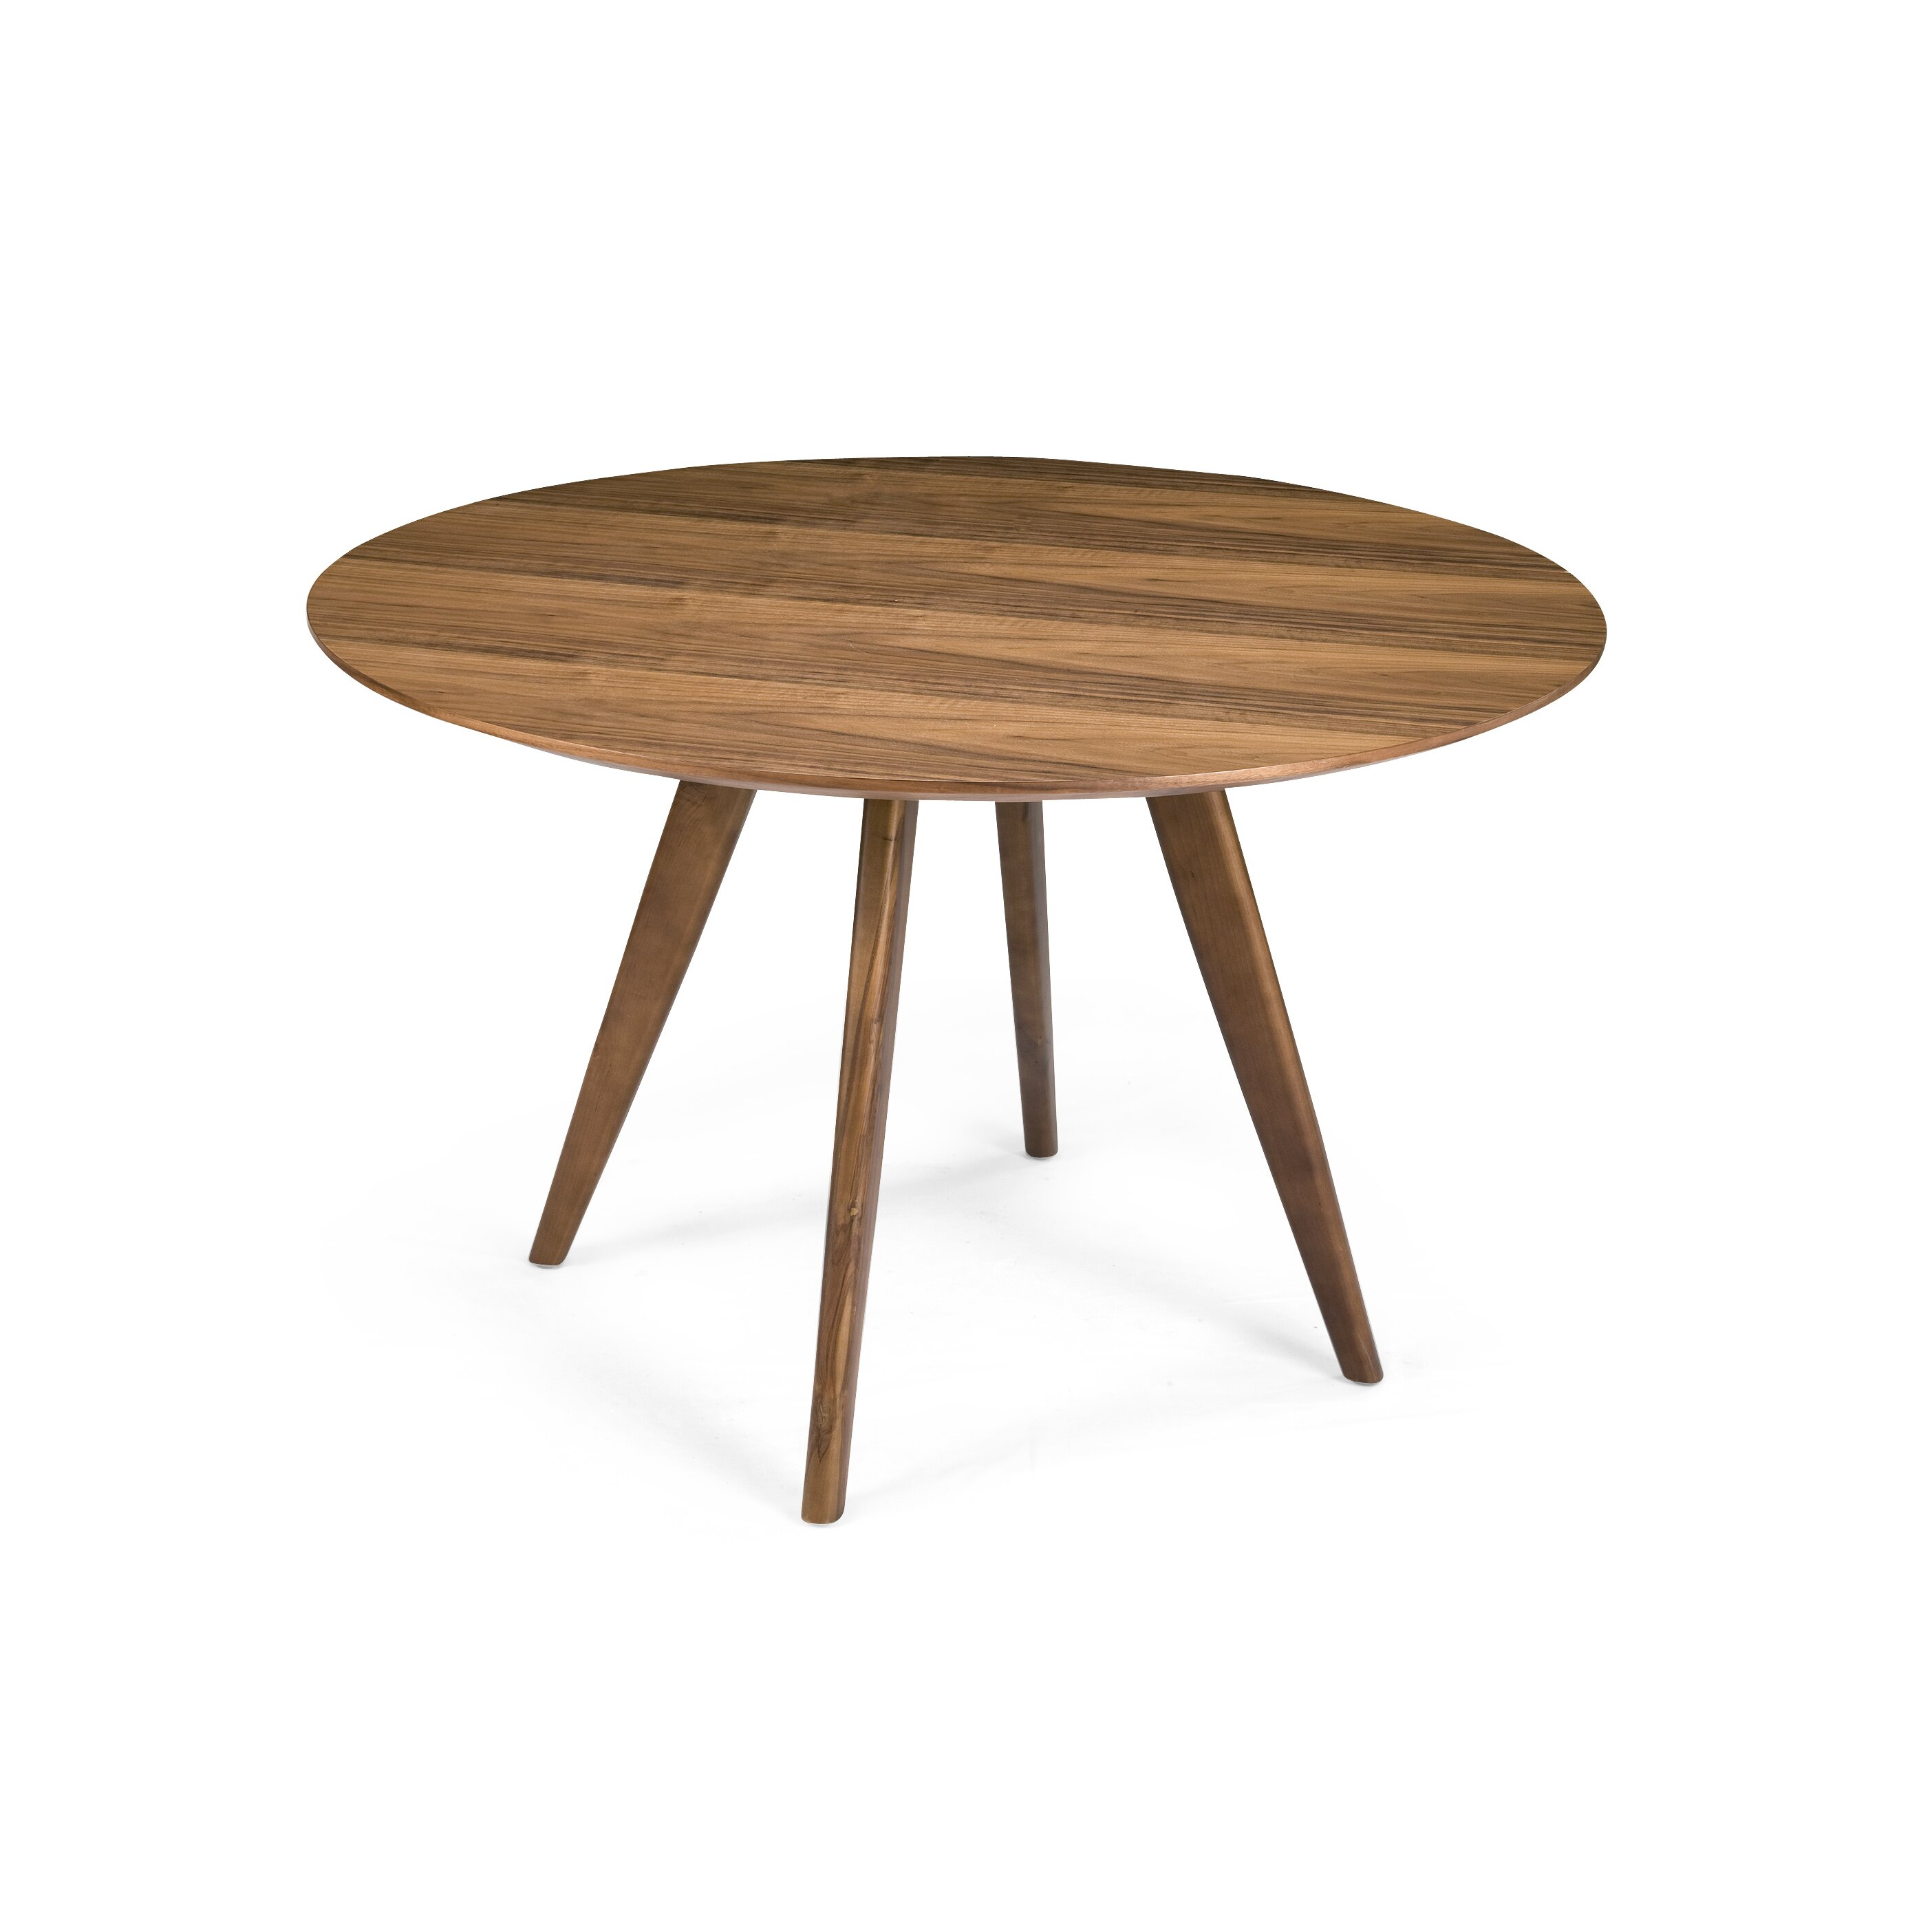 Danish Modern Dining Table Mid Century Dining Tables Youll Love Wayfair